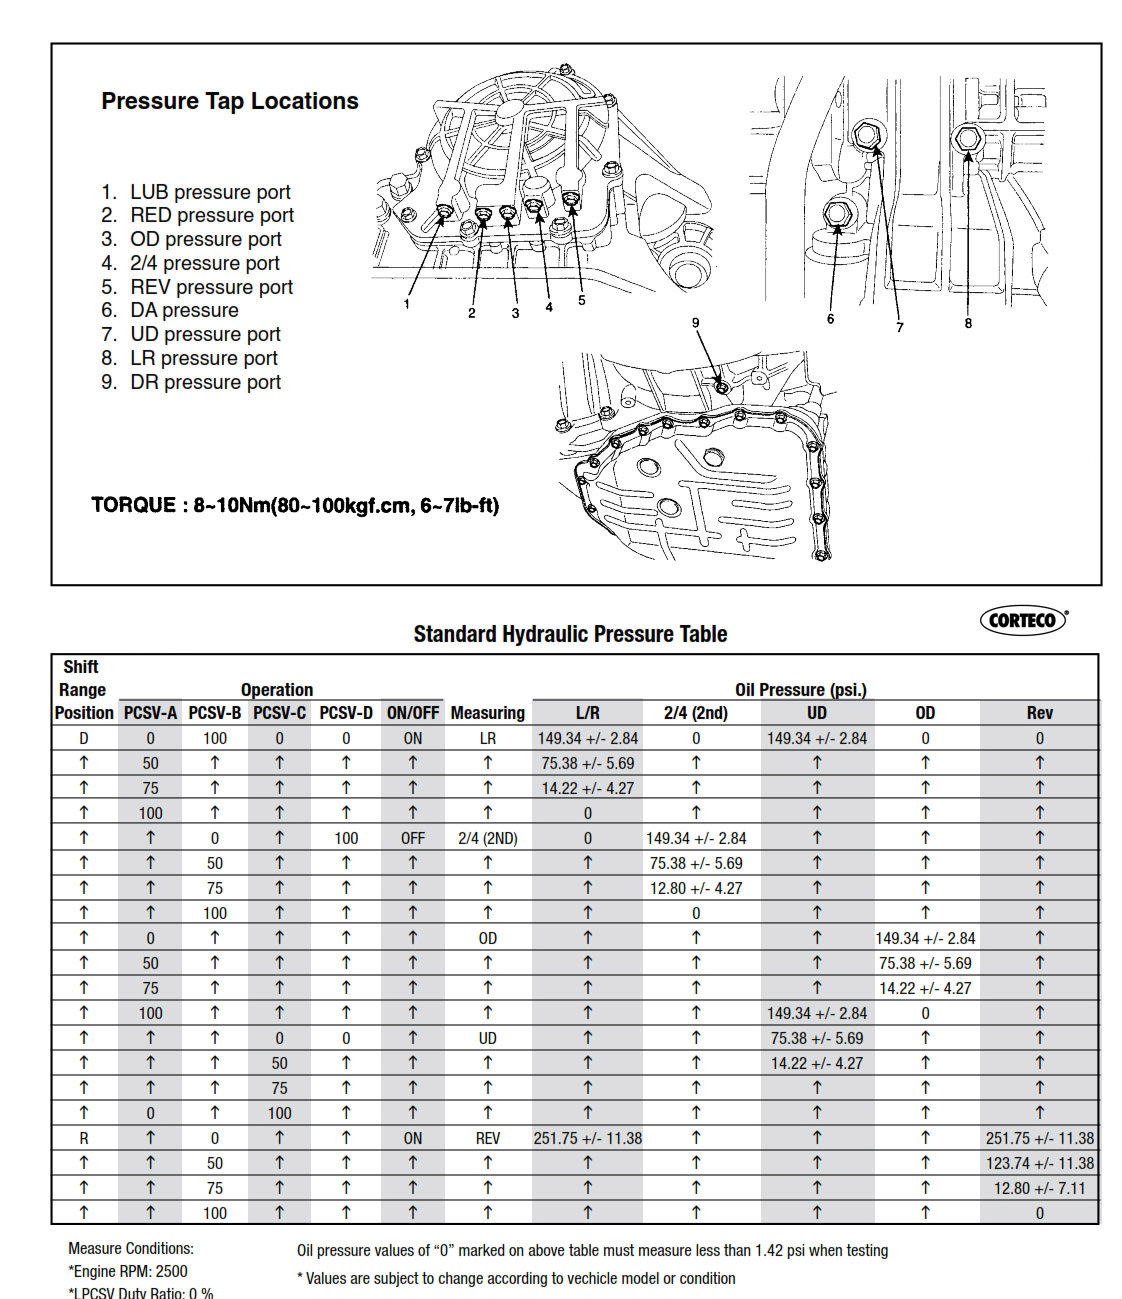 A4CF1 Transmission parts, repair guidlines, problems, manuals on